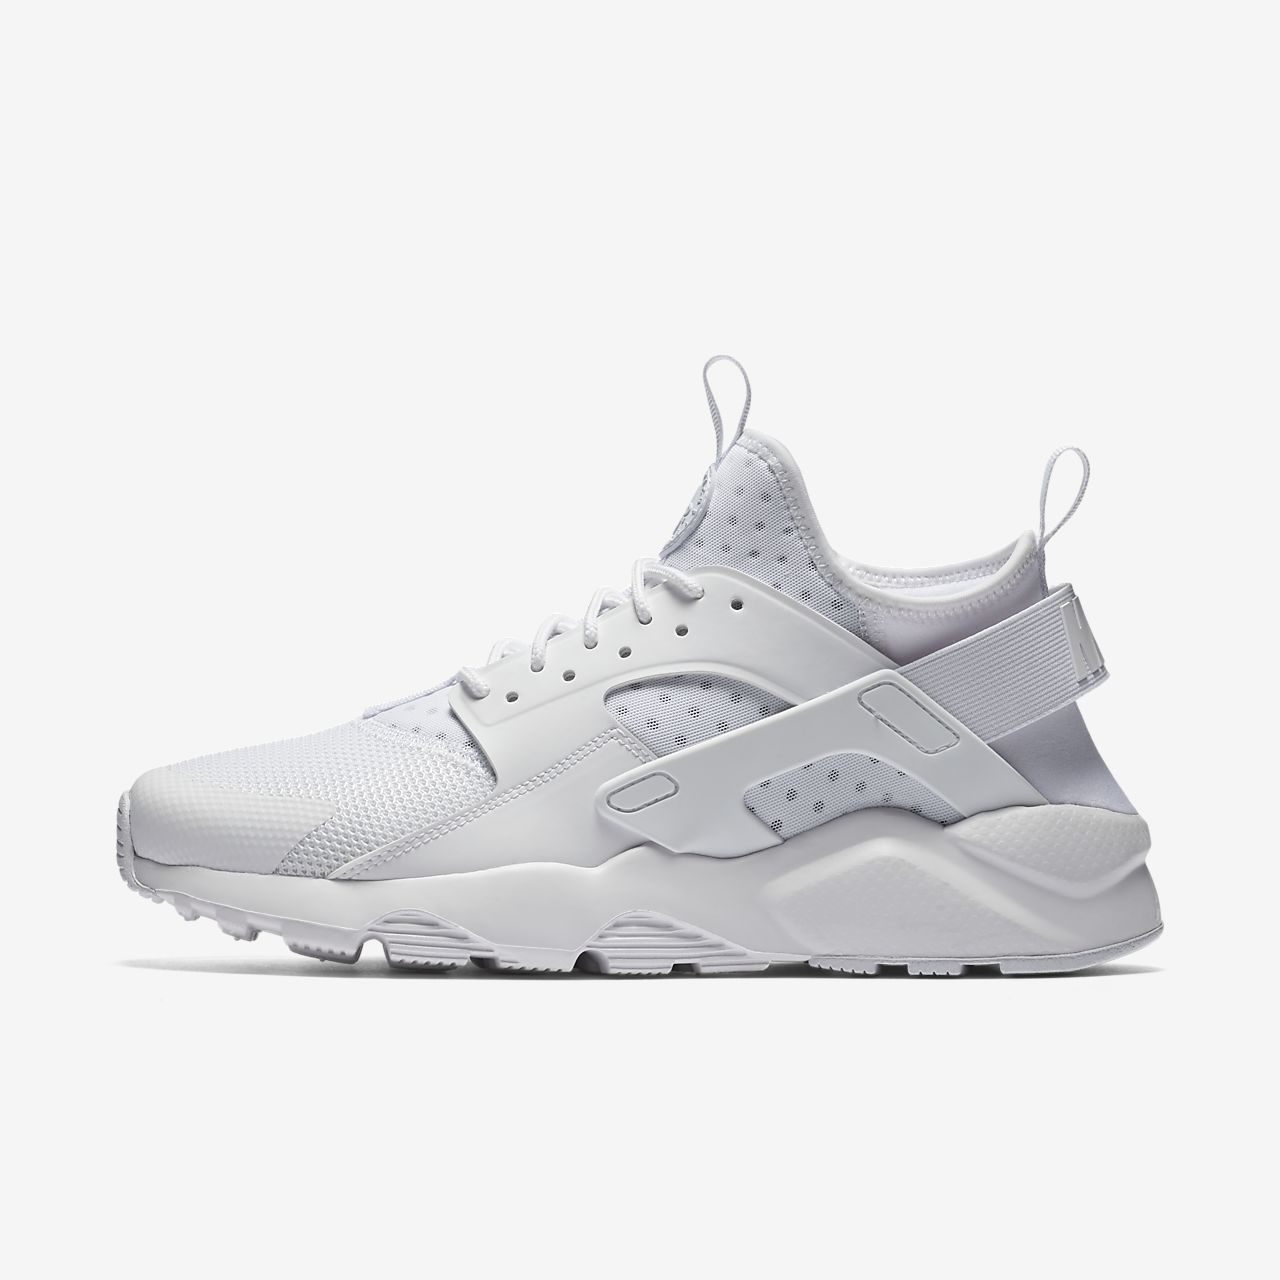 7e80edaf60d7a3 Nike Air Huarache Ultra Men s Shoe. Nike.com AU